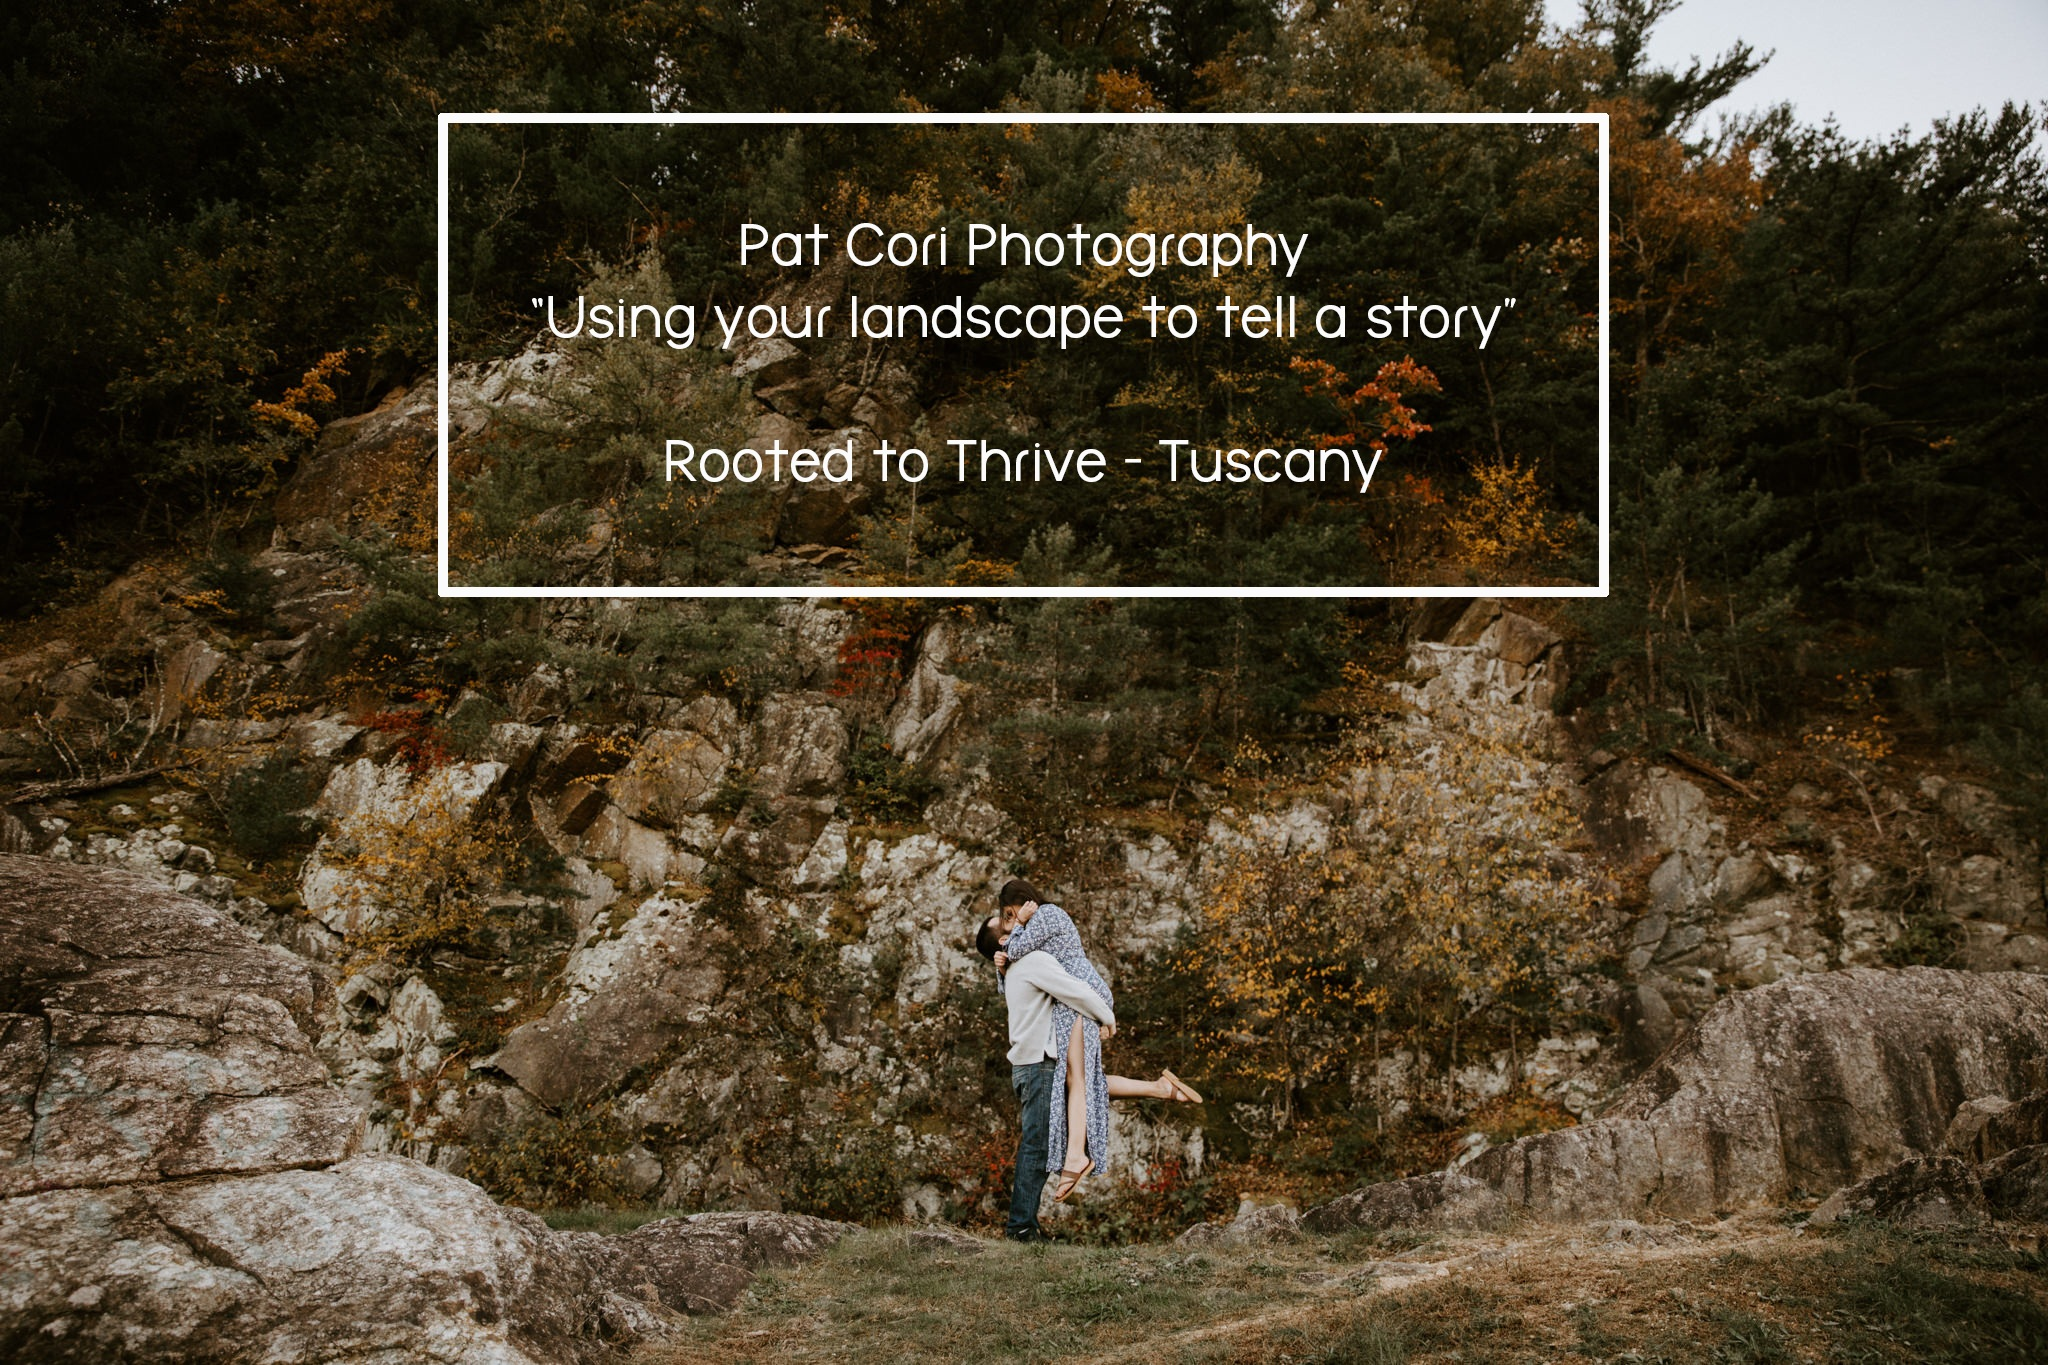 Pat Cori Photography - One of the things that Pat is most passionate about is using the landscapes in couple's portraiture. If you are looking for an introduction on how to do so, here is a sneak peek of how she shoots and the process of how she gets her epic shots.